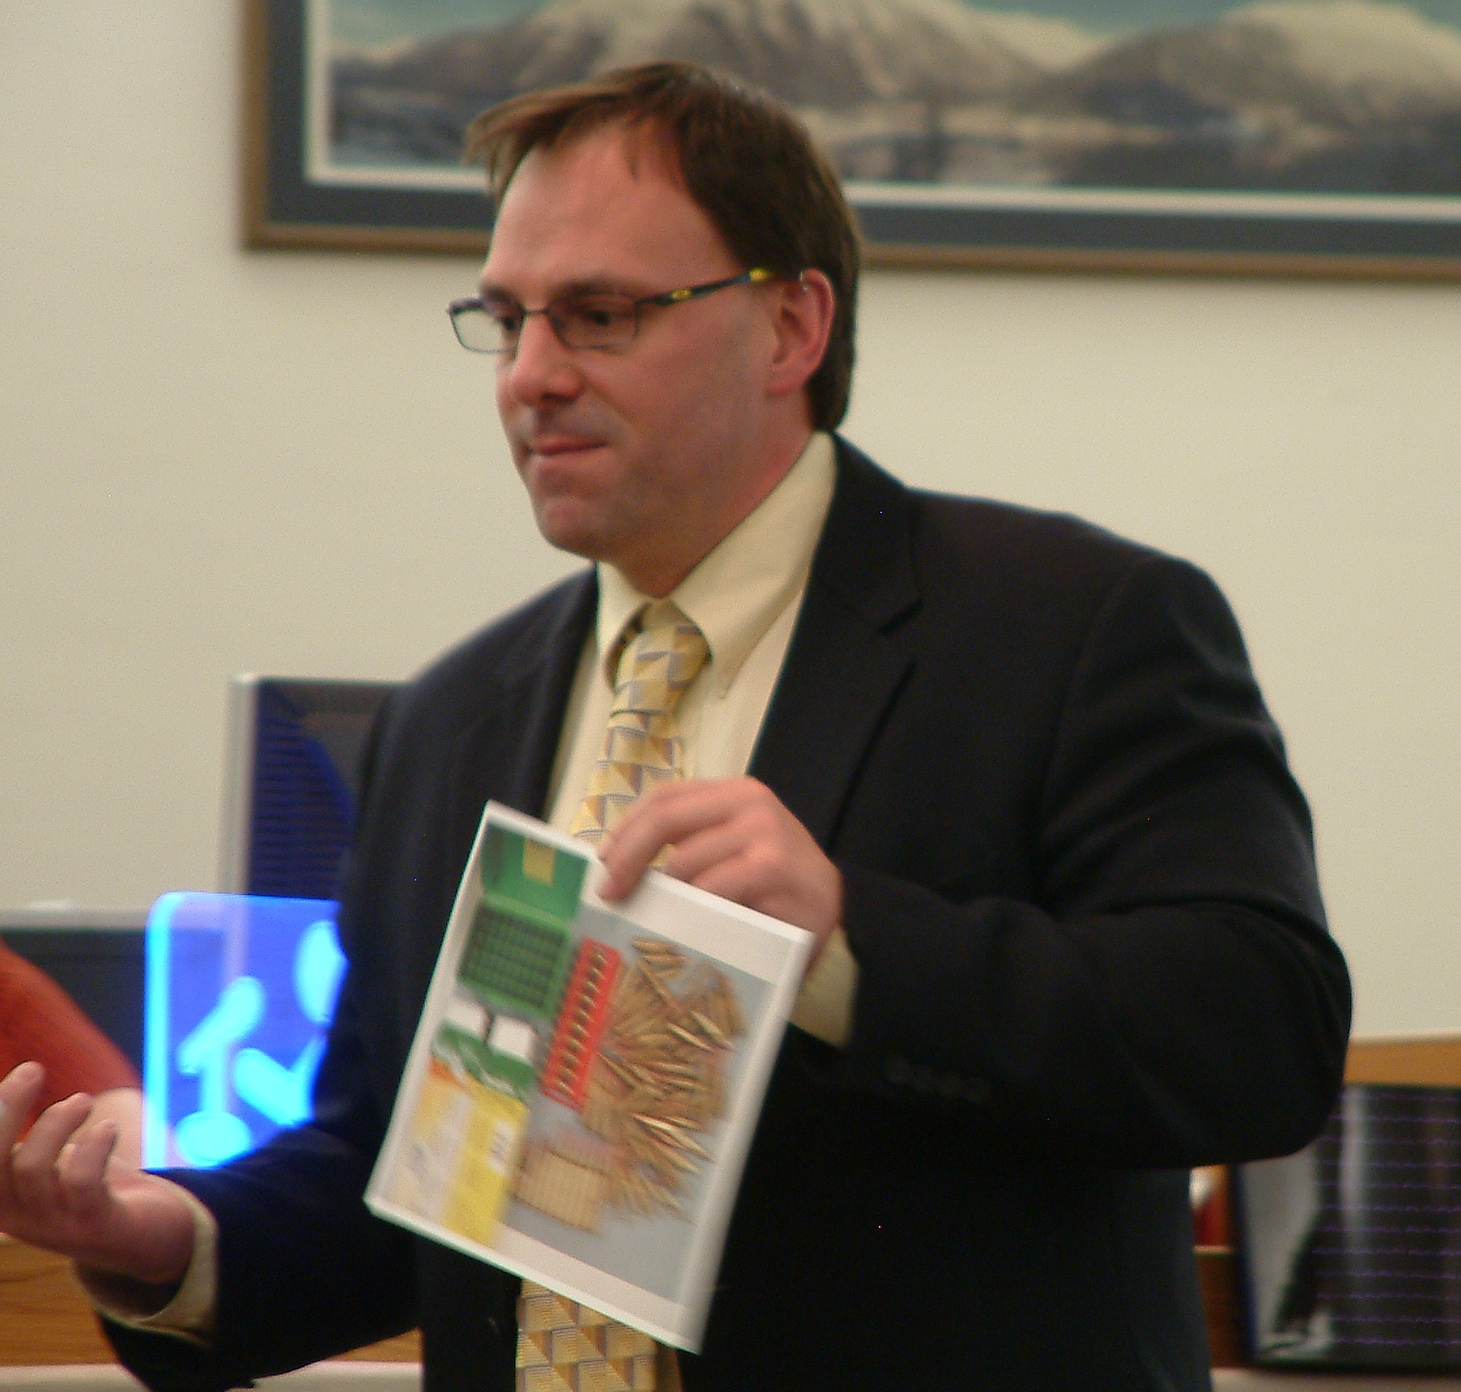 Public defender Eric Hedland uses a picture of seized evidence as part of his closing arguments to the jury on Thursday. Photo by Matt Miller/KTOO News